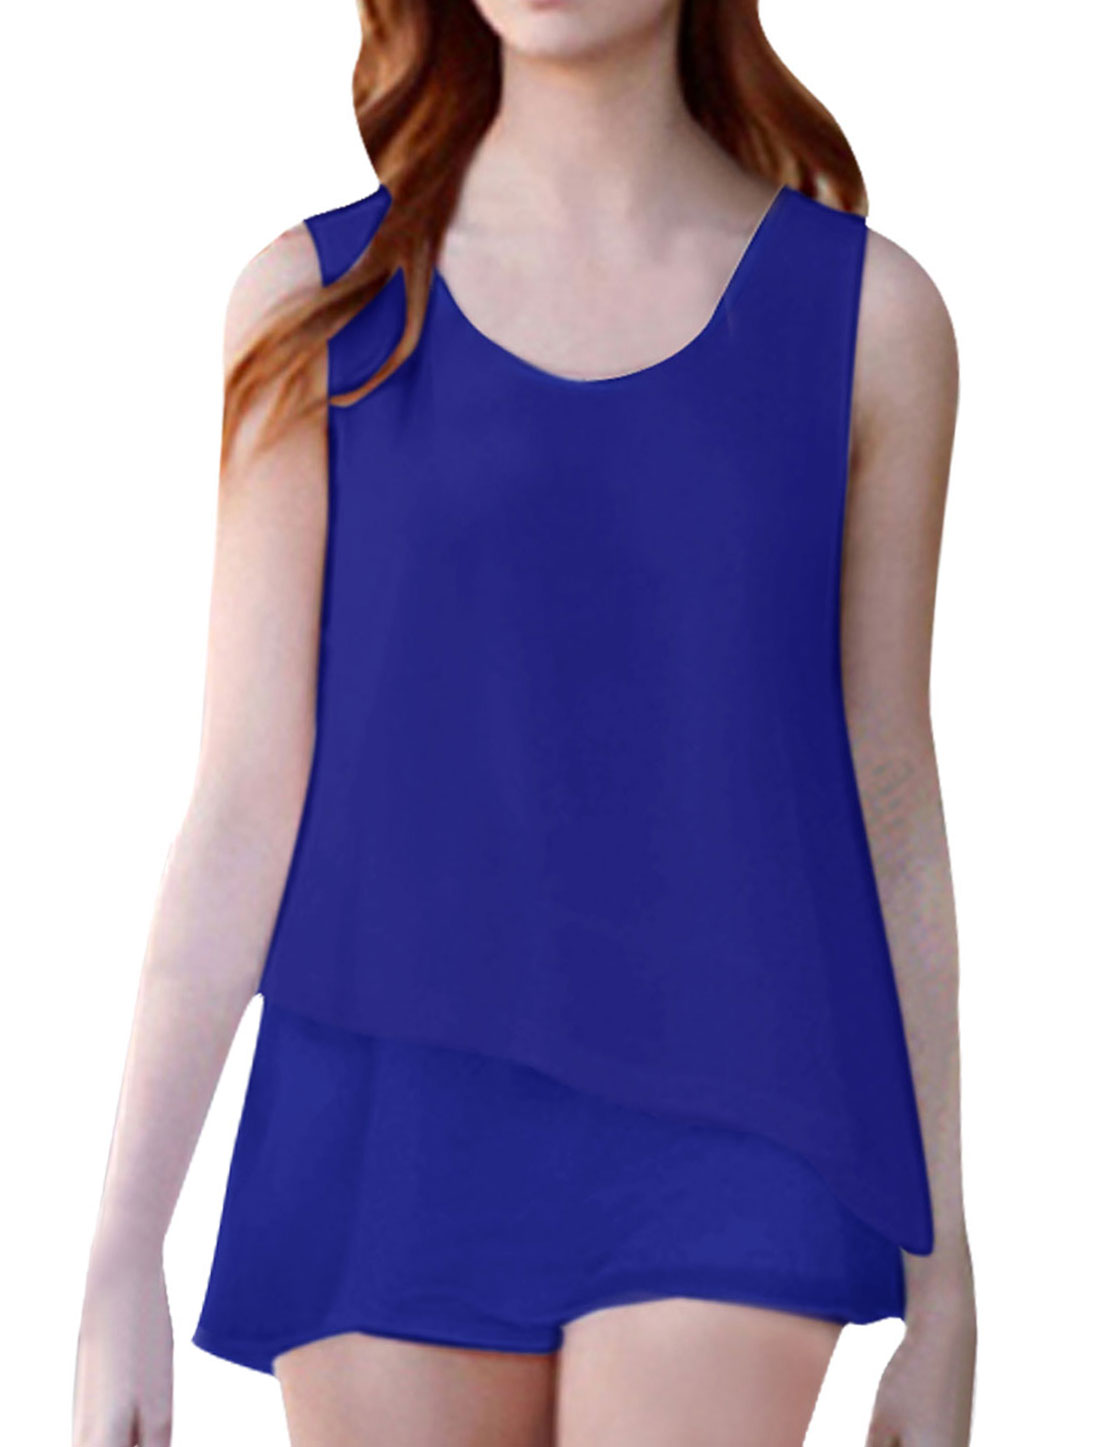 Woman New Fashion Round Neck Sleeveless Lined Royalblue Chiffon Tunic Tops S